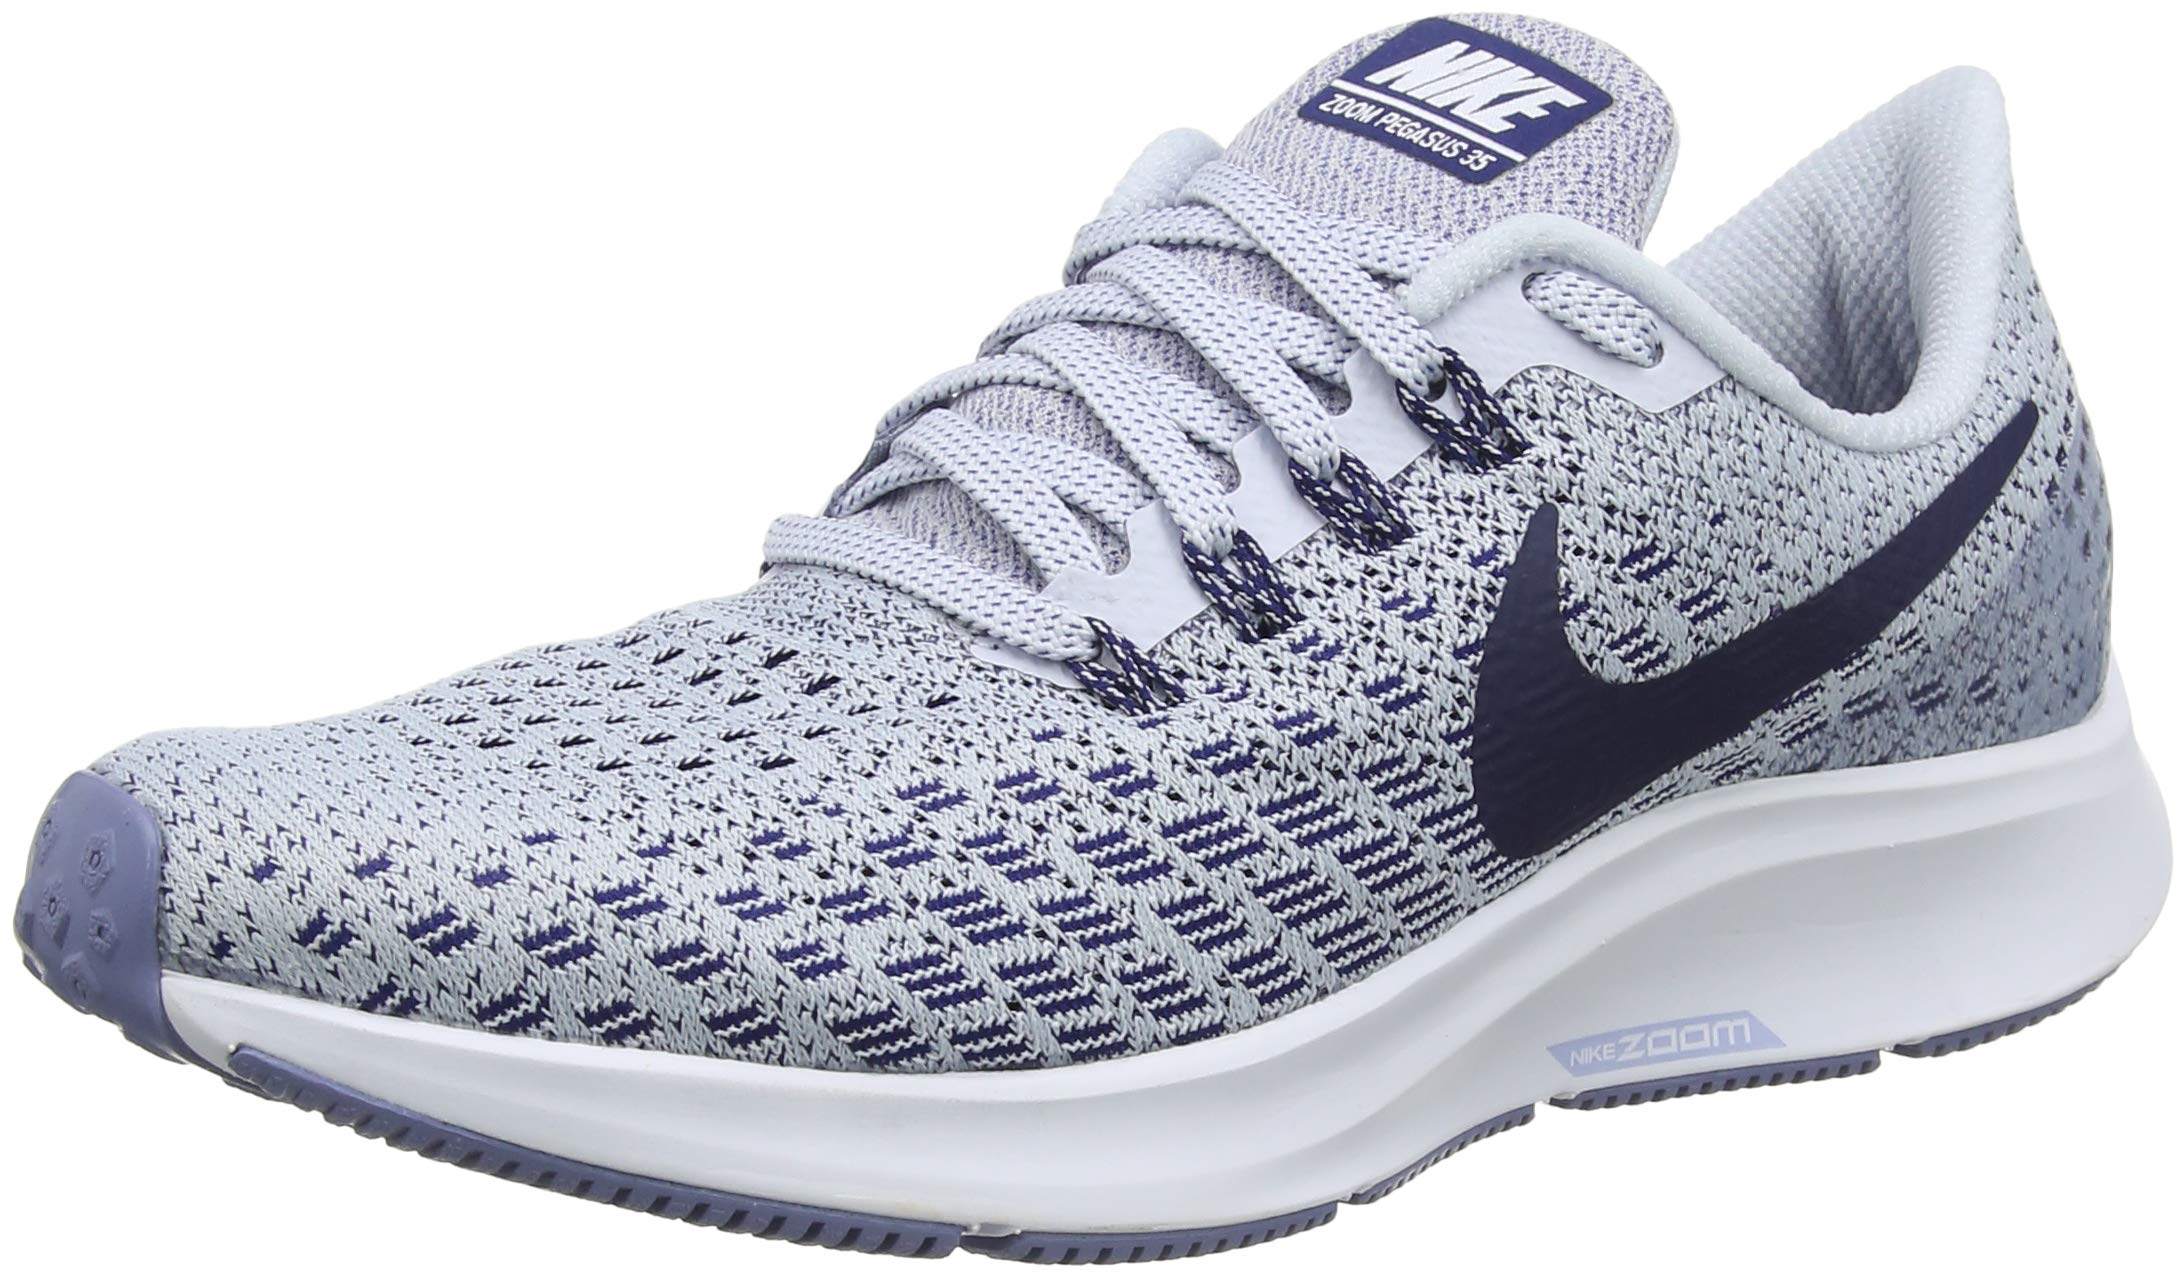 NIKE Womens Air Zoom Pegasus 35 Running Shoes, Football Grey/White/Aluminum/Blue Void, 8 B(M) US